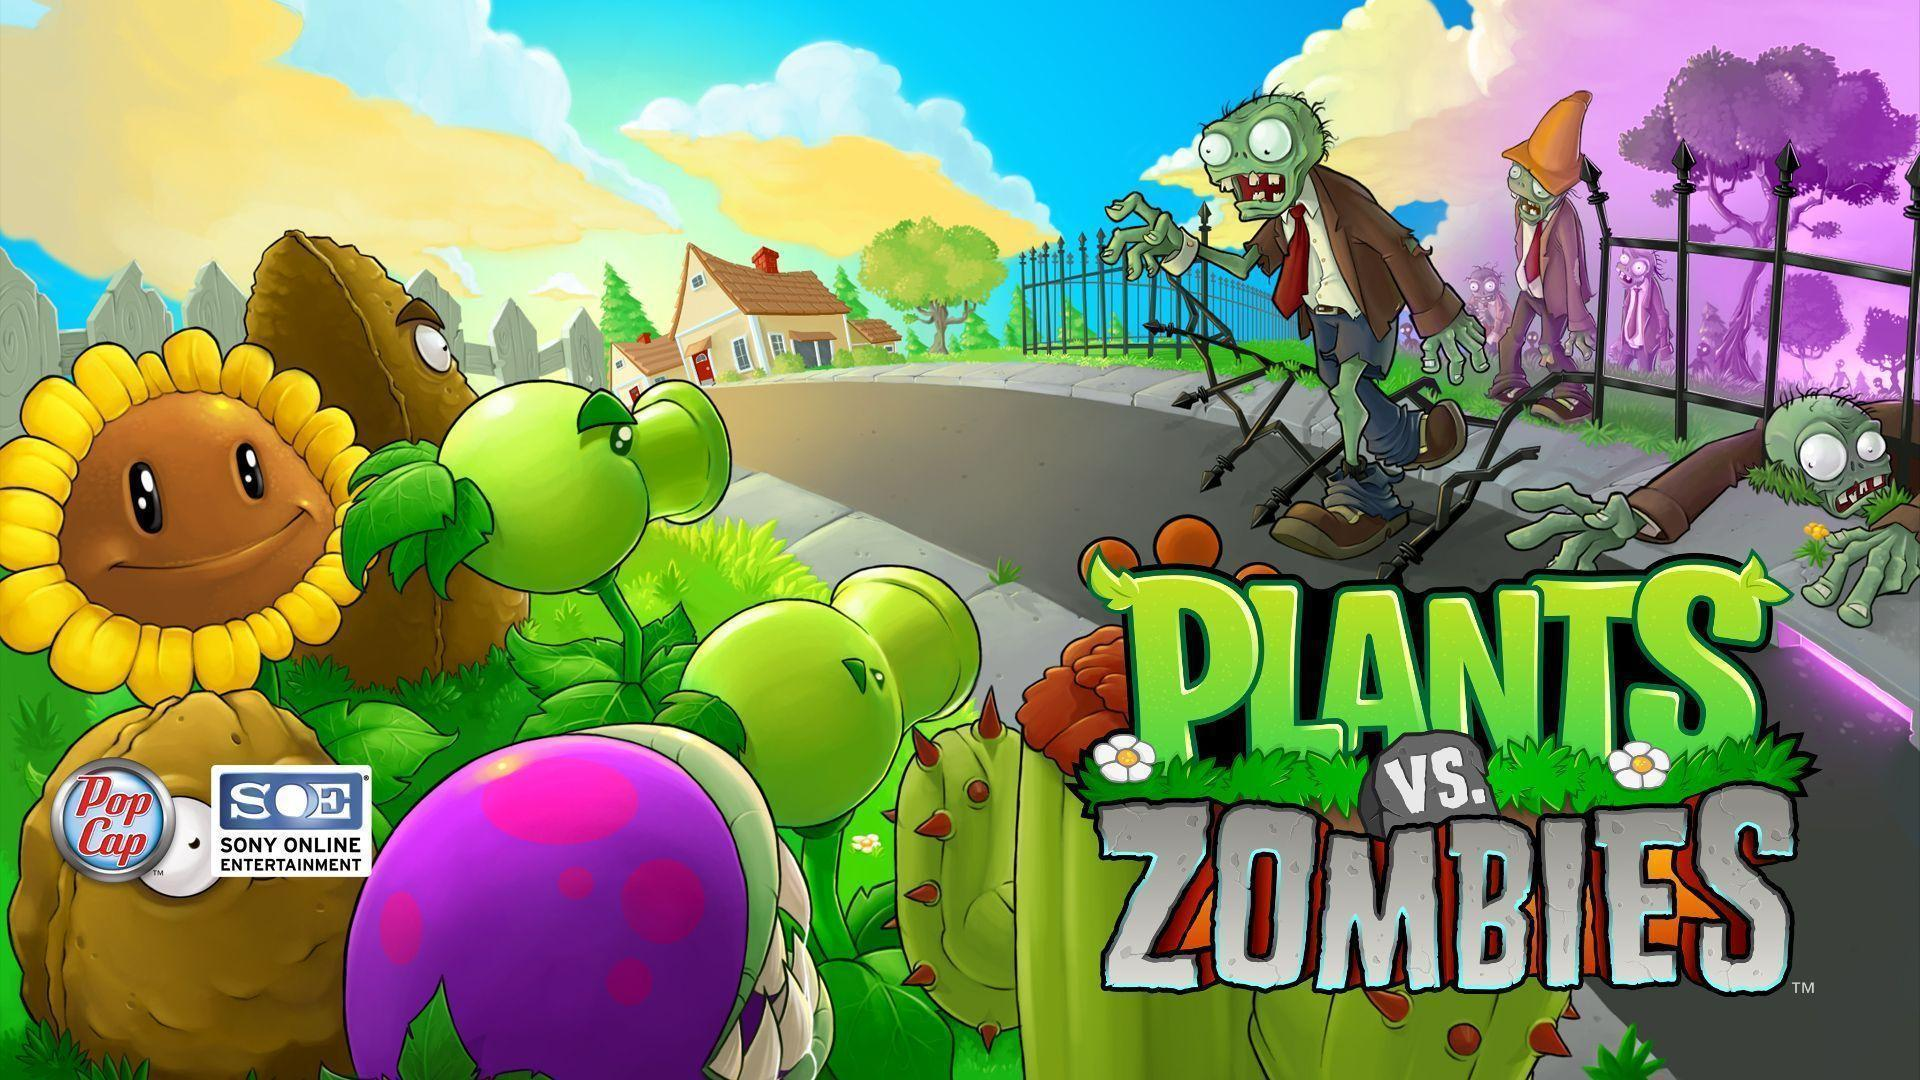 Plants vs zombies wallpapers wallpaper cave plants vs zombies playstation 3 goodies download toneelgroepblik Image collections